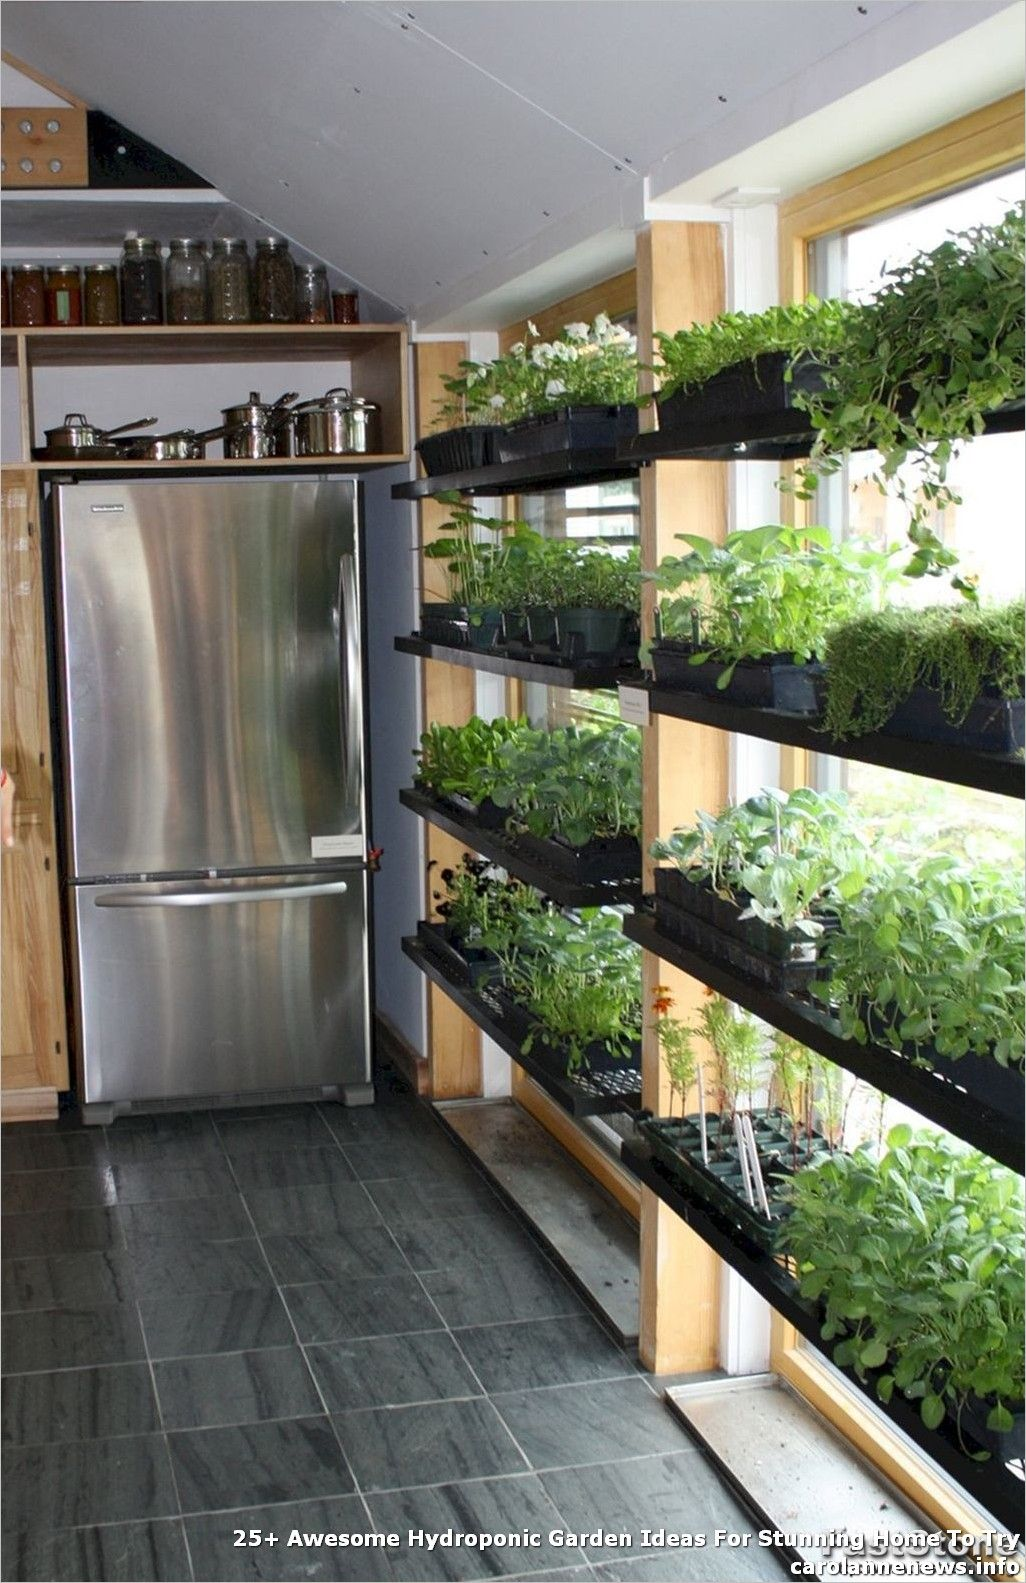 9+ #Awesome #Hydroponic #Garden #Ideas #For #Stunning #Home #To